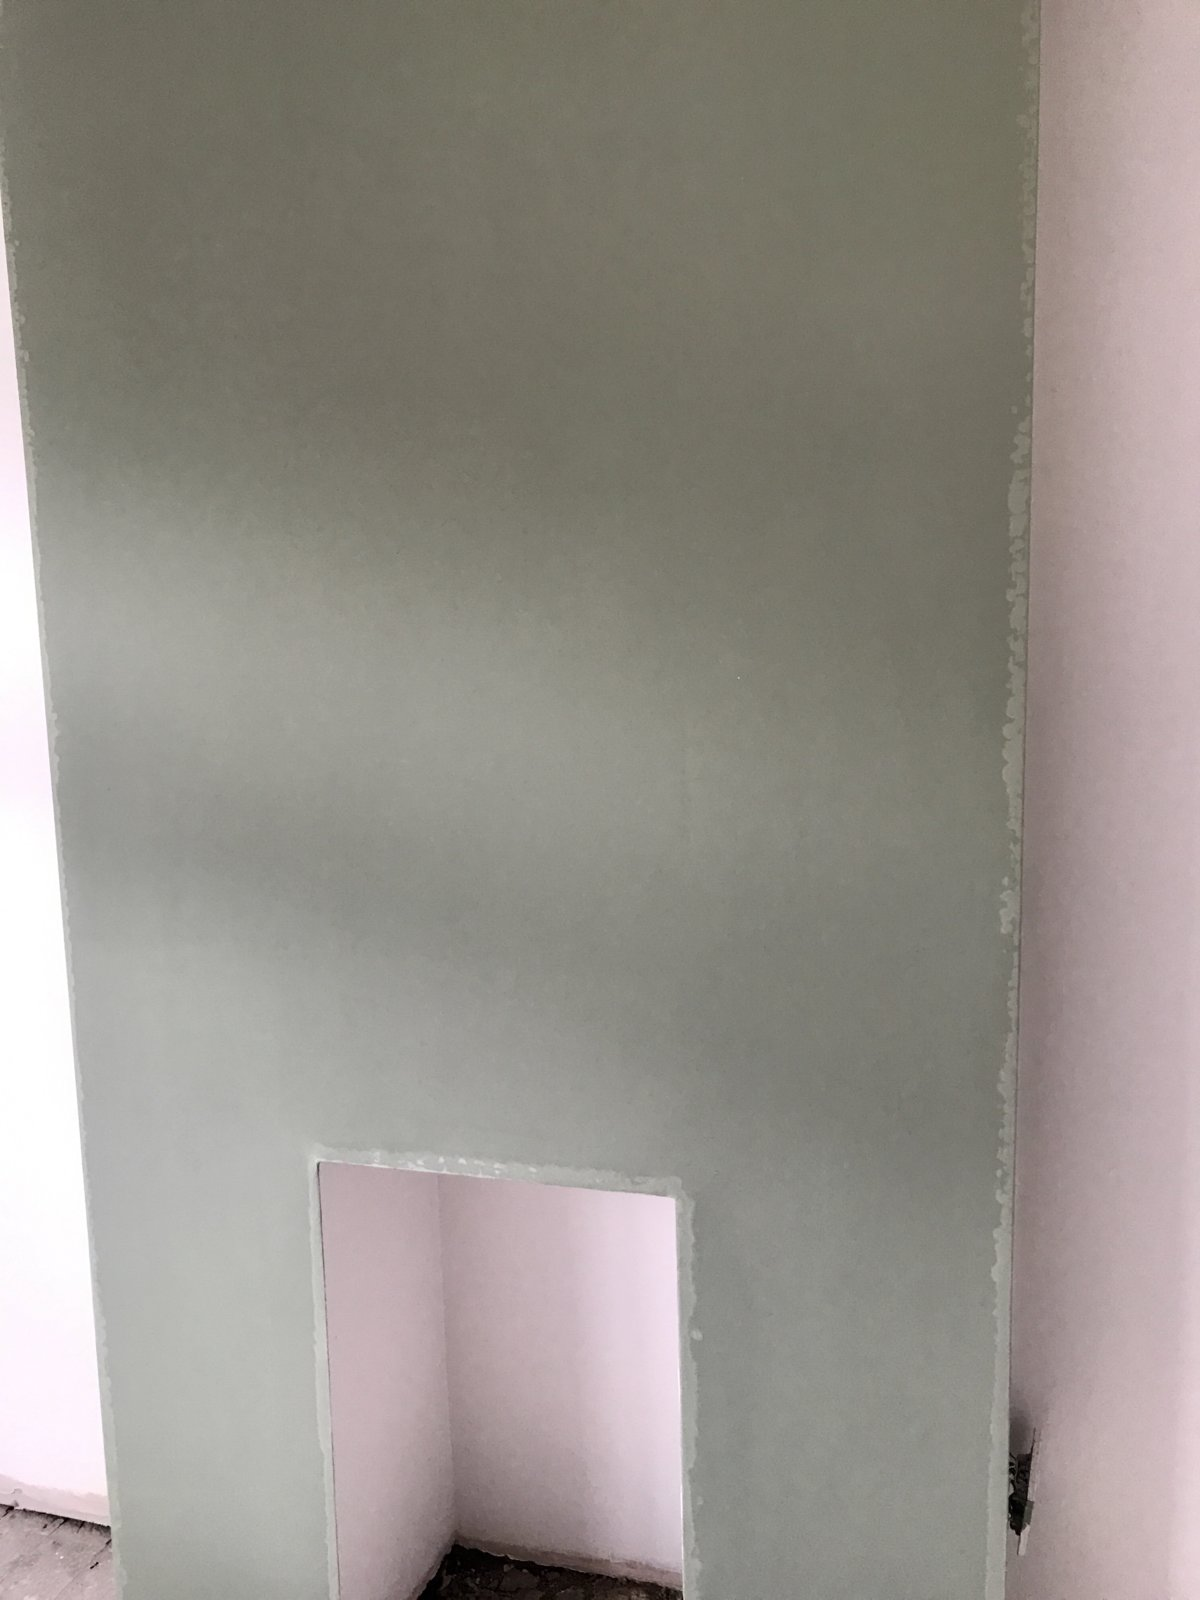 Paint problem on newly plastered wall